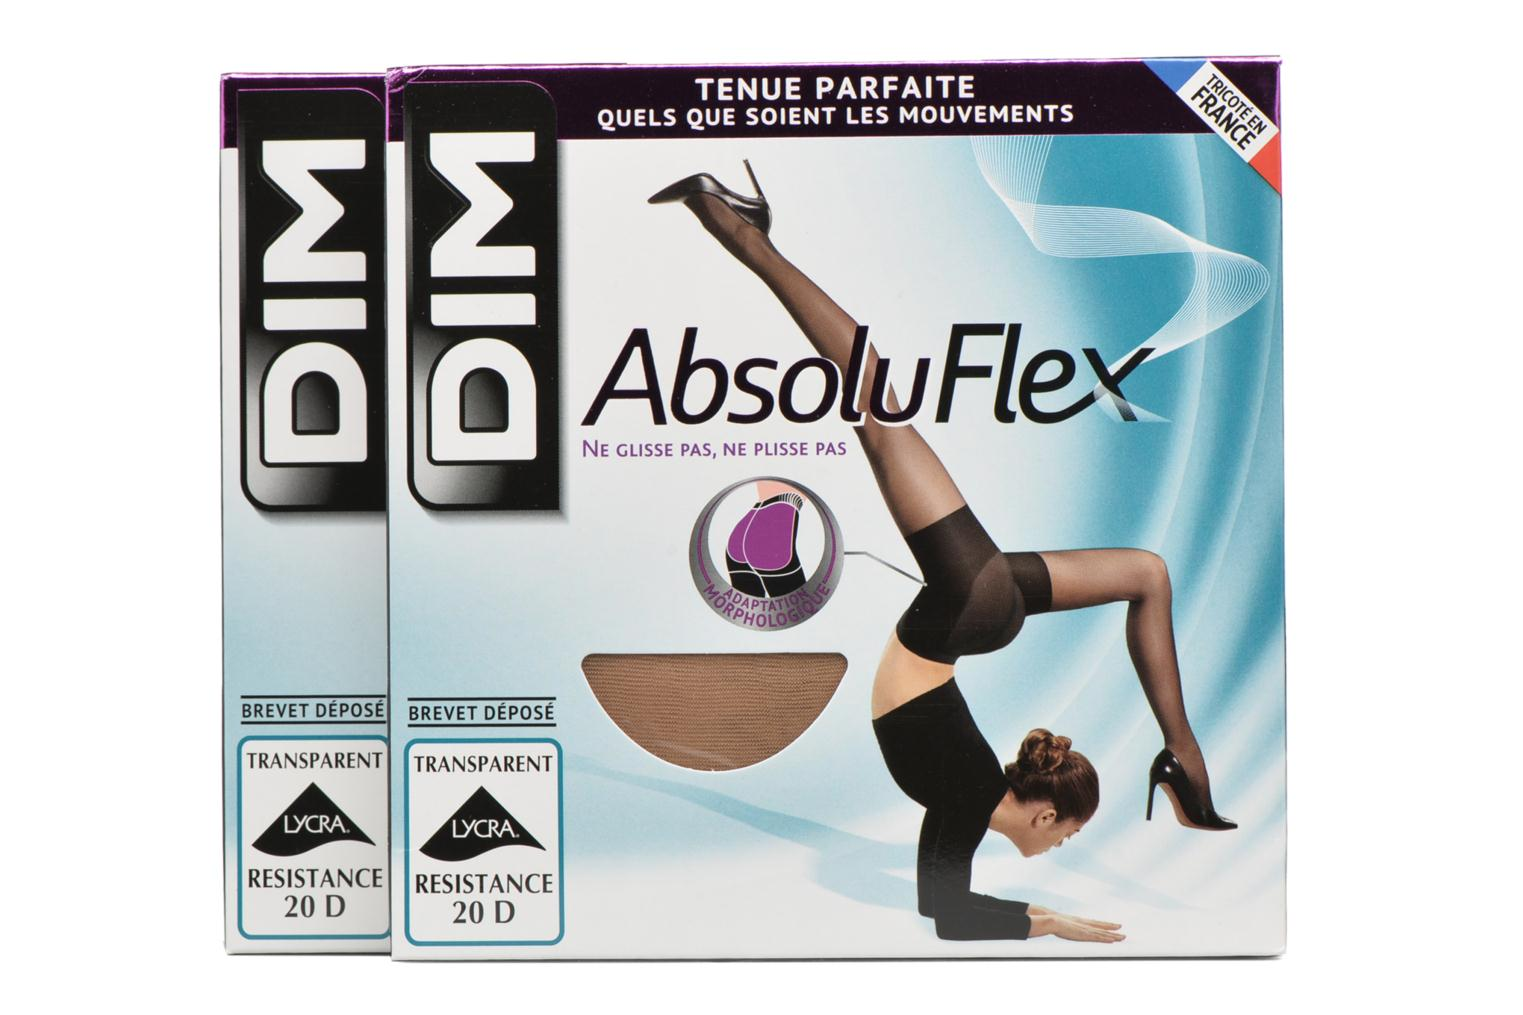 Calze e collant Accessori Collant ABSOLU FLEX TRANSPARENT Pacco da 2